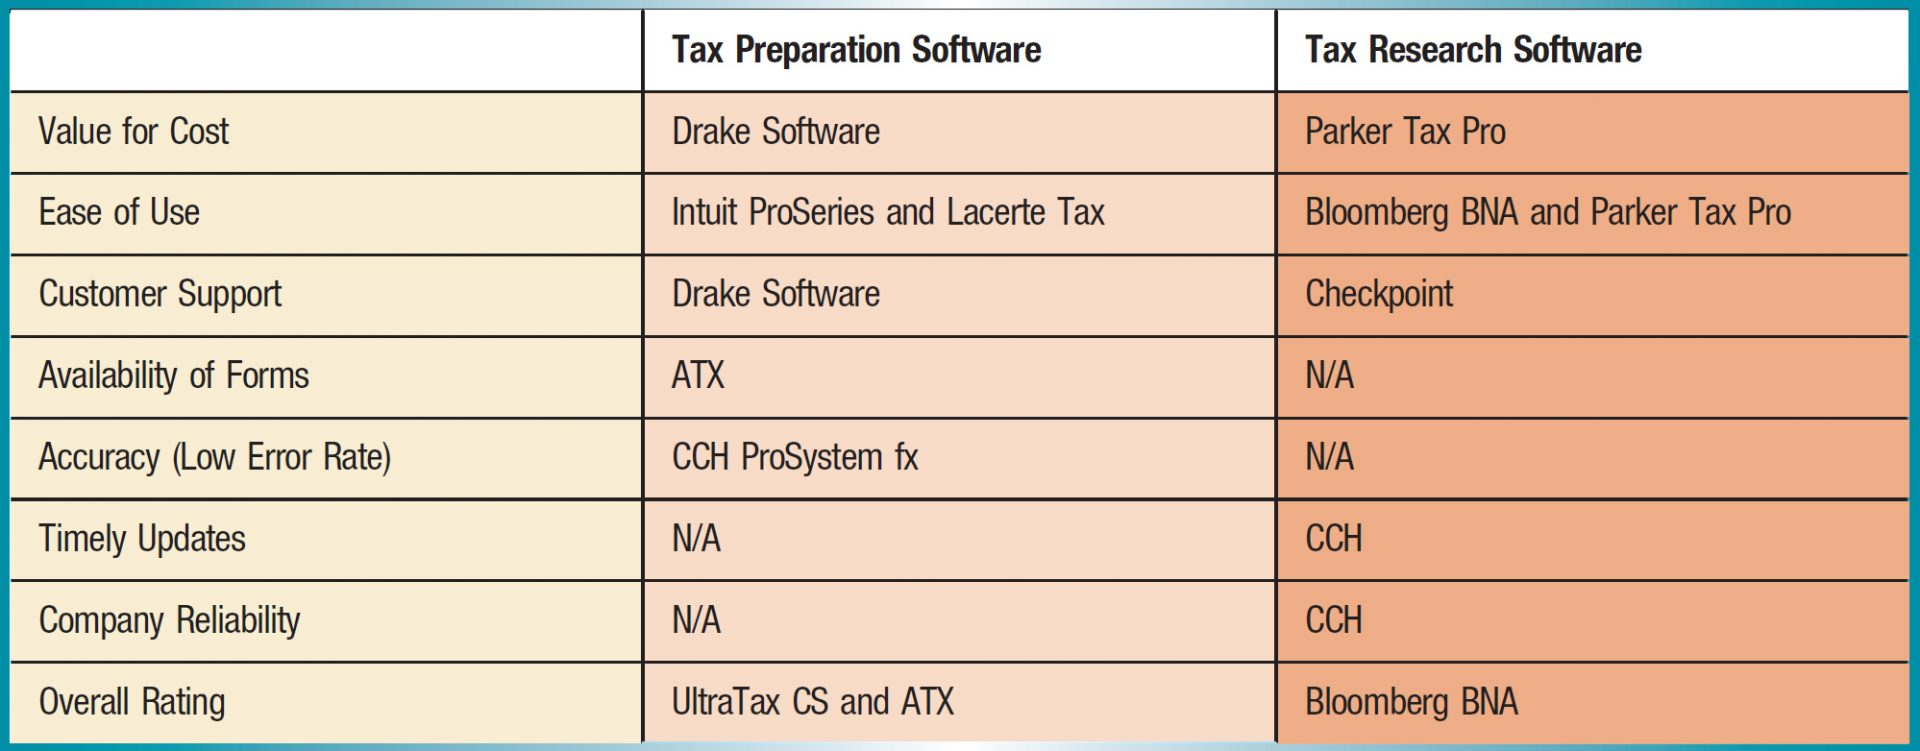 Top Choices in Tax Software - The CPA Journal